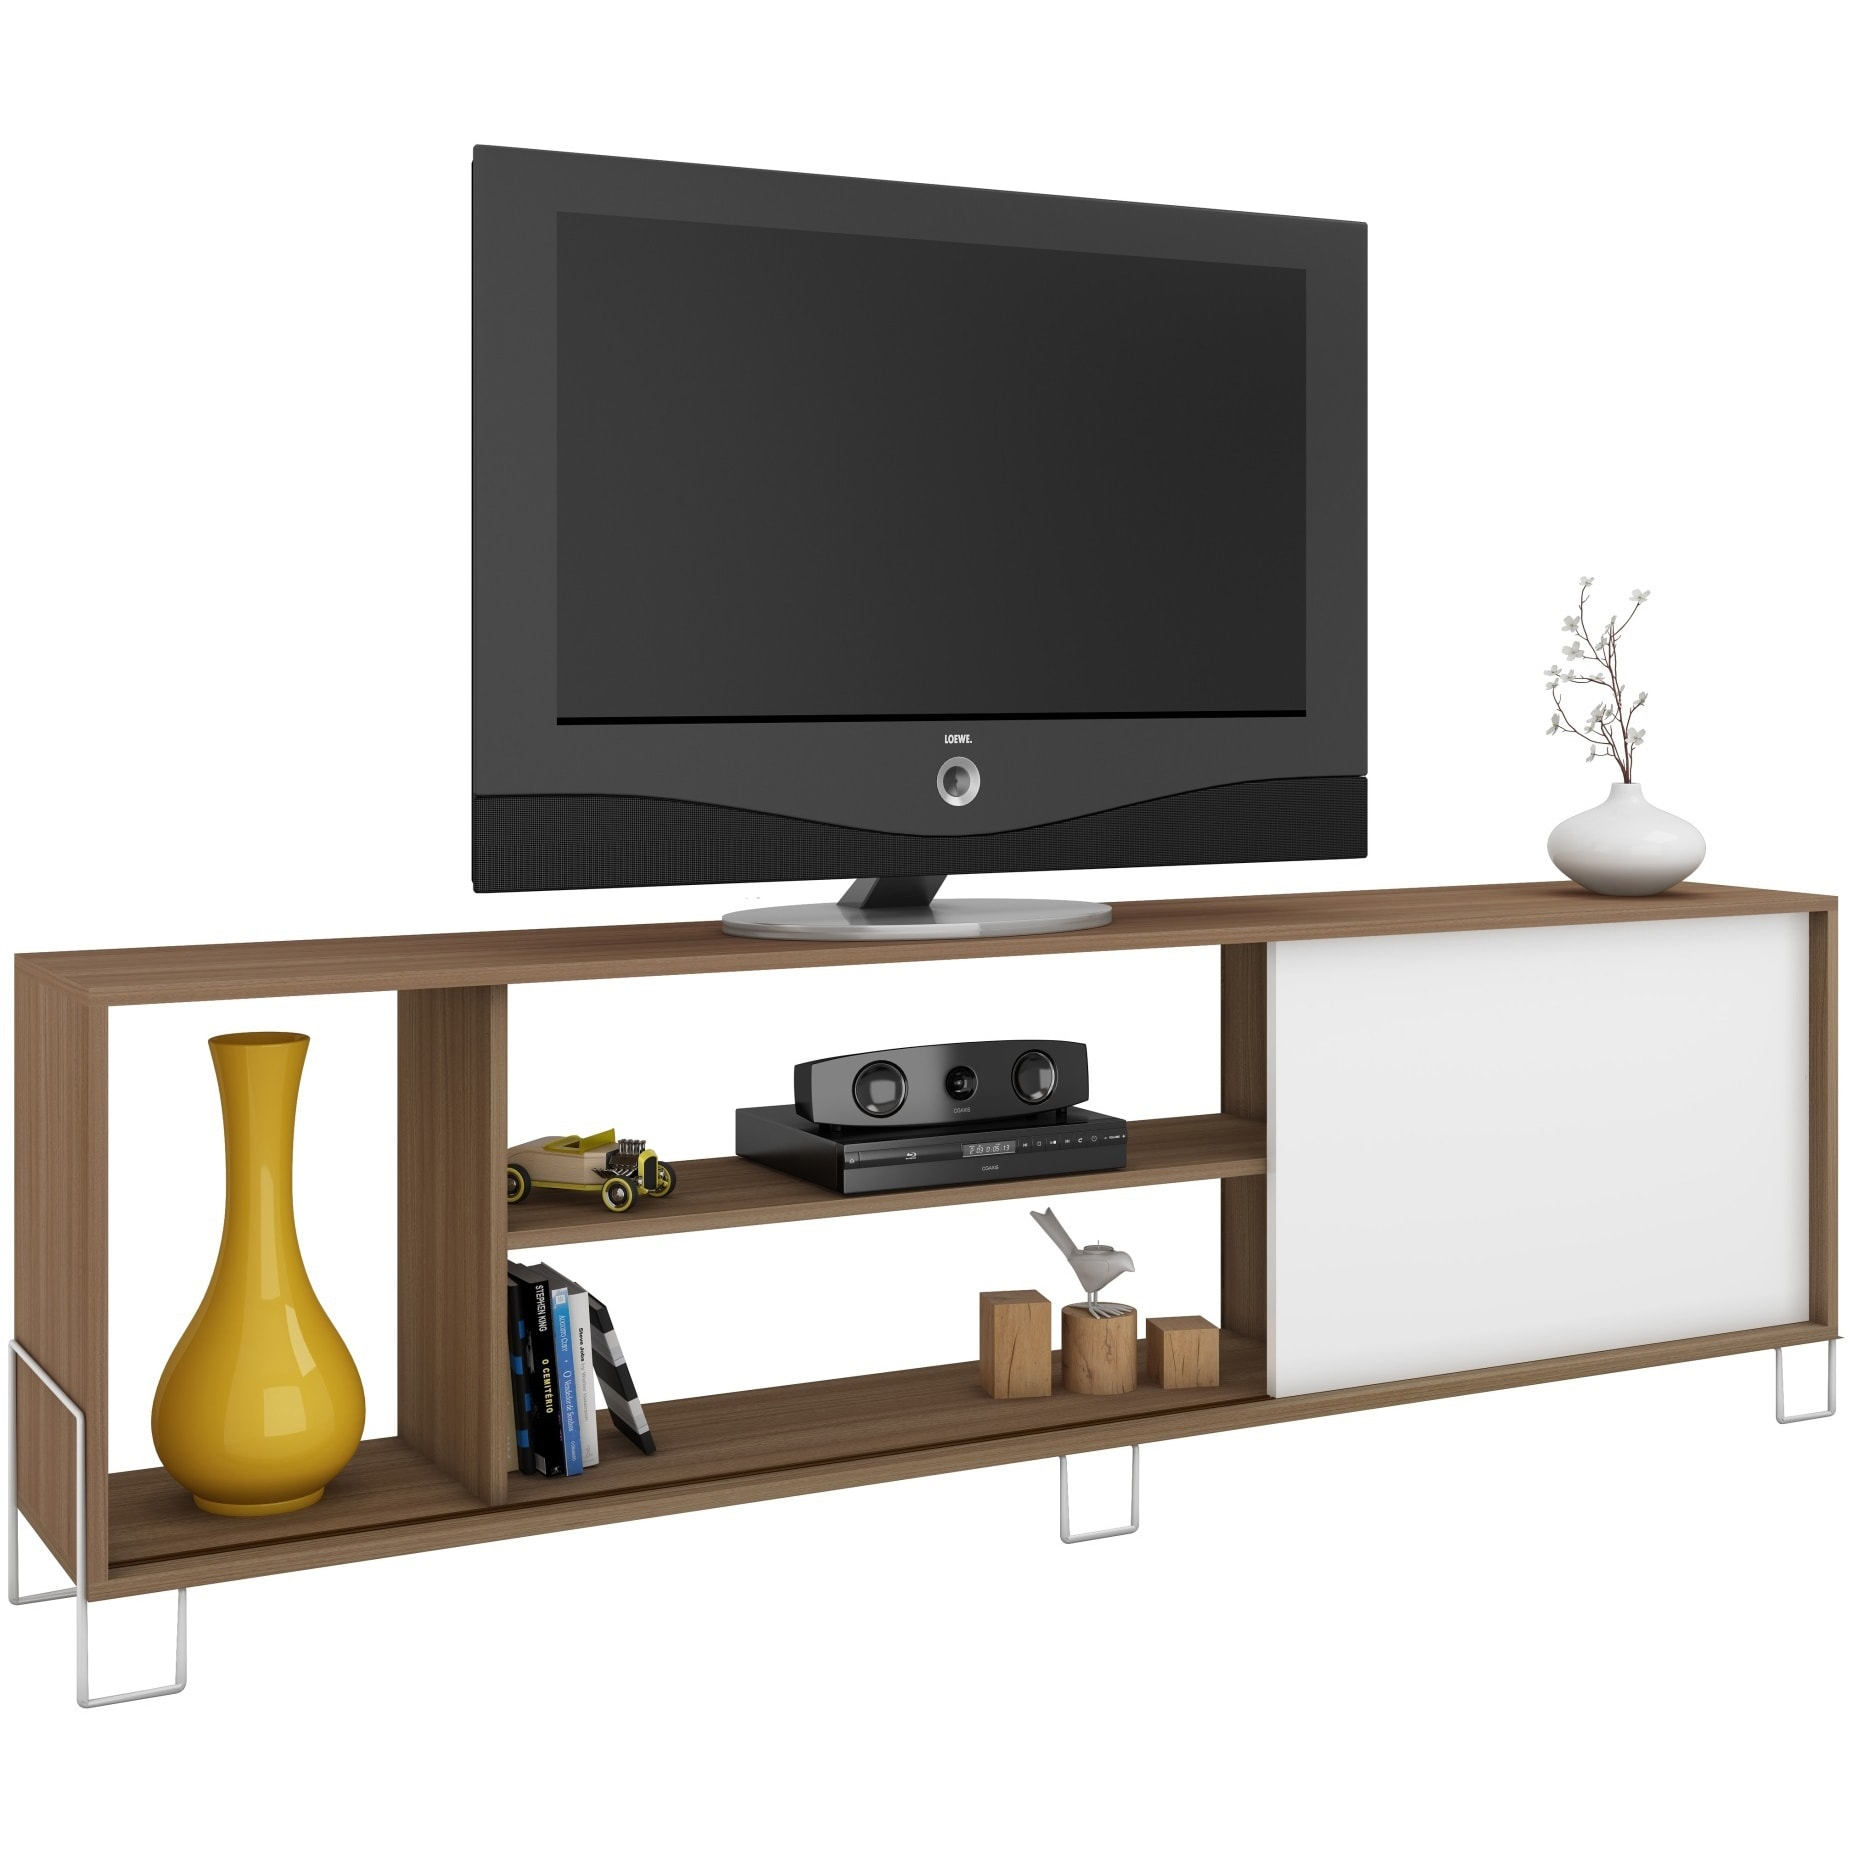 Shop Accentuations By Manhattan Comfort Nacka 4 Shelf Tv Stand With